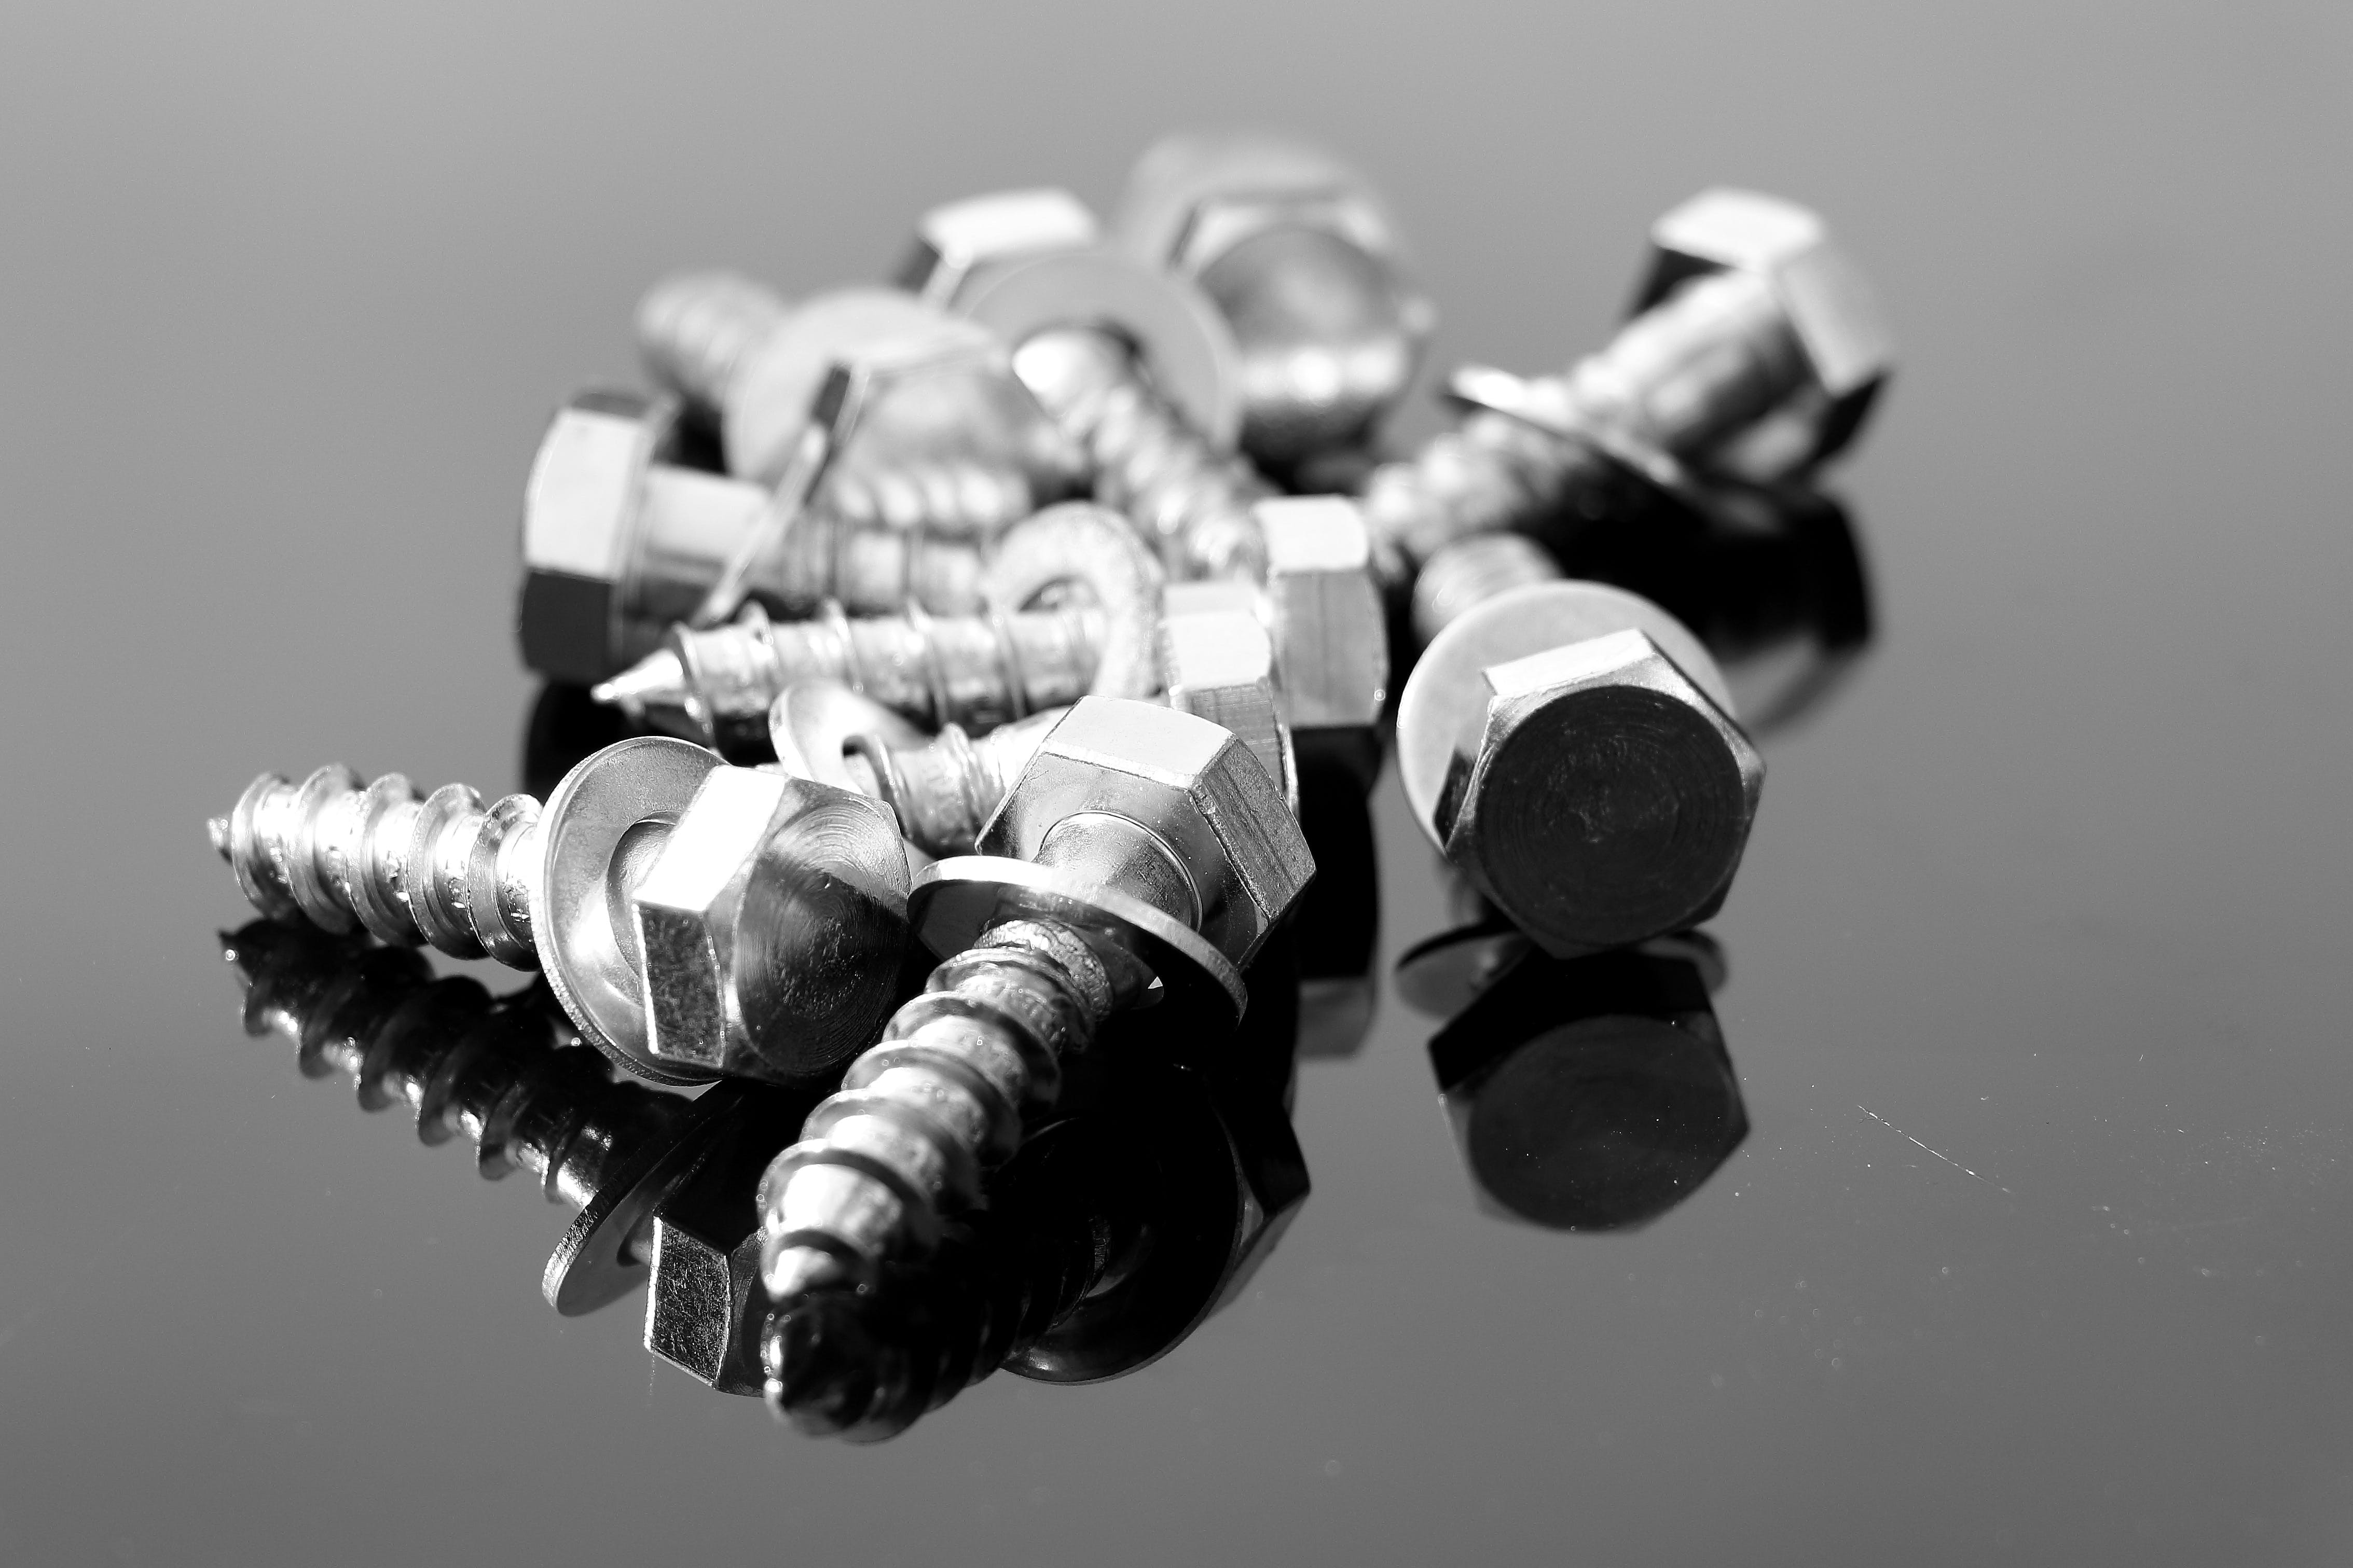 Free stock photo of black-and-white, reflection, screw